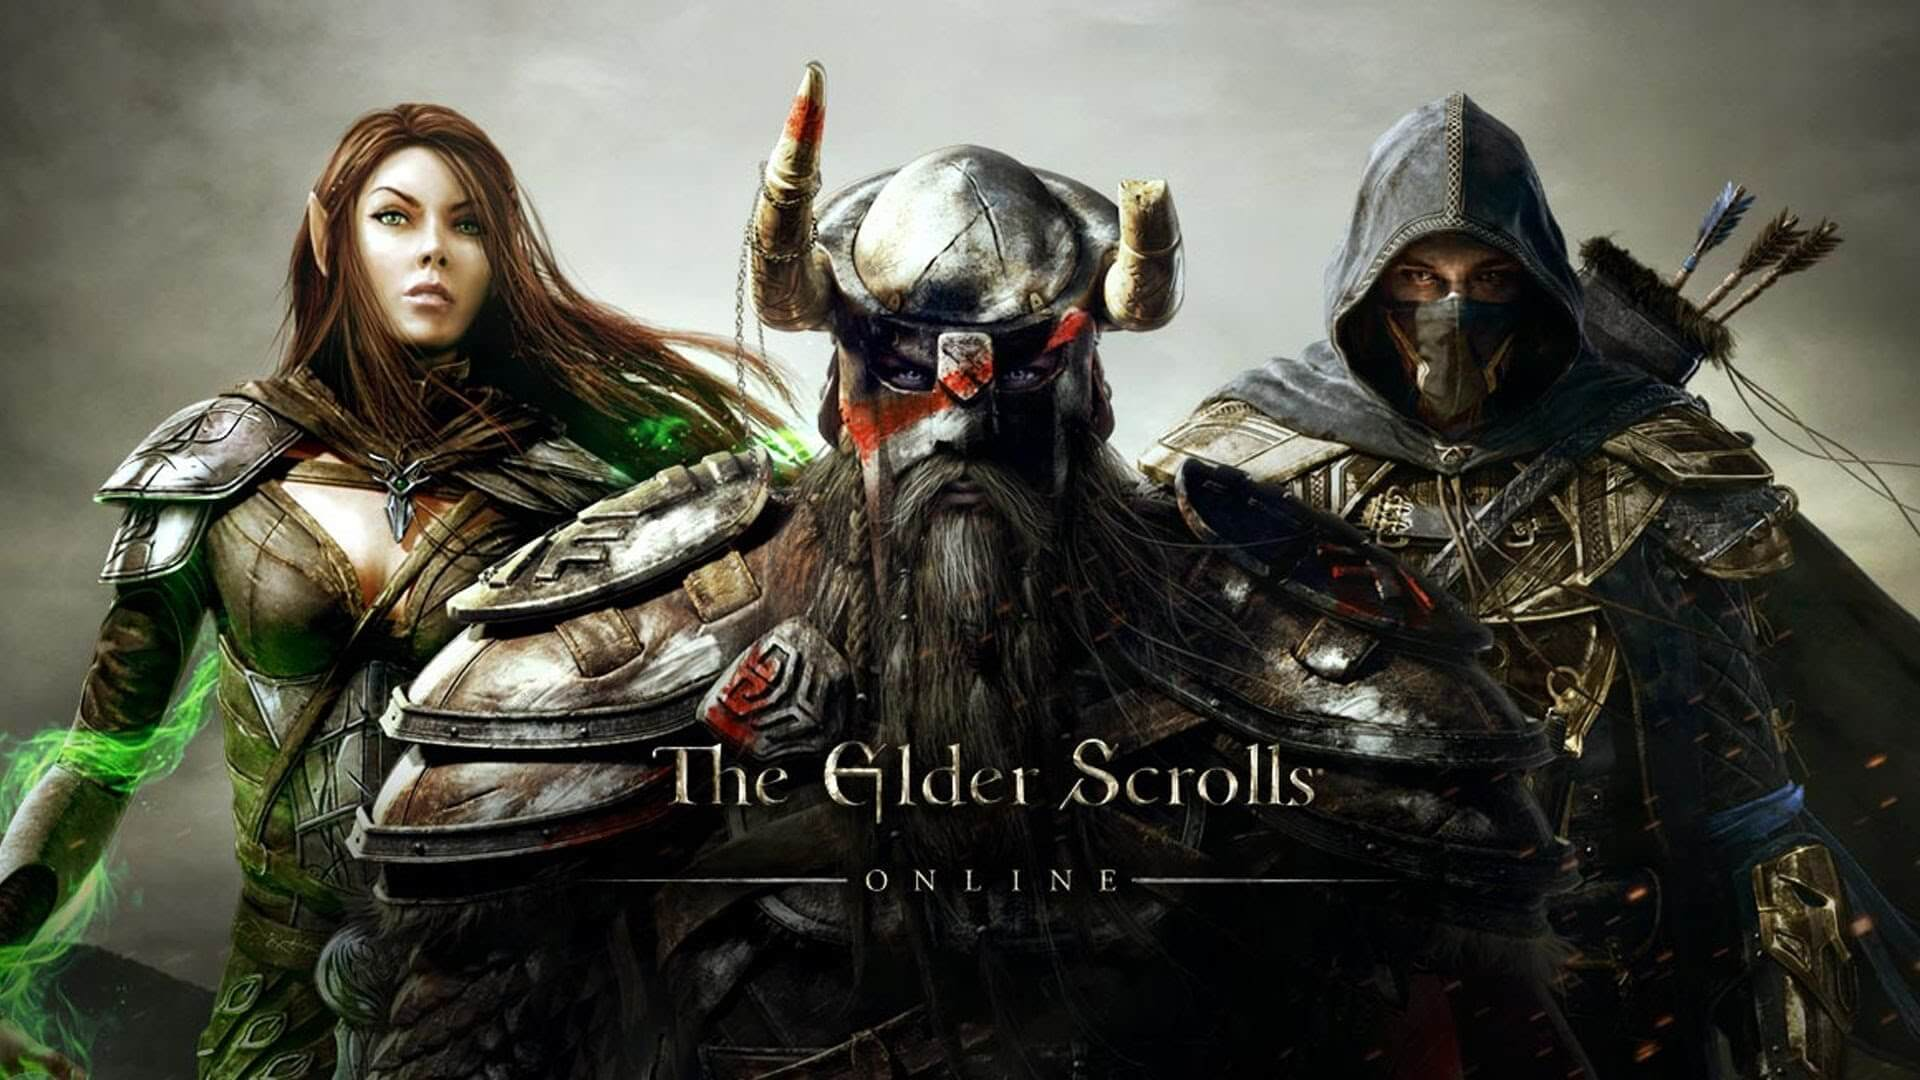 Elder Scrolls Online Free to Play for an Extended Weekend